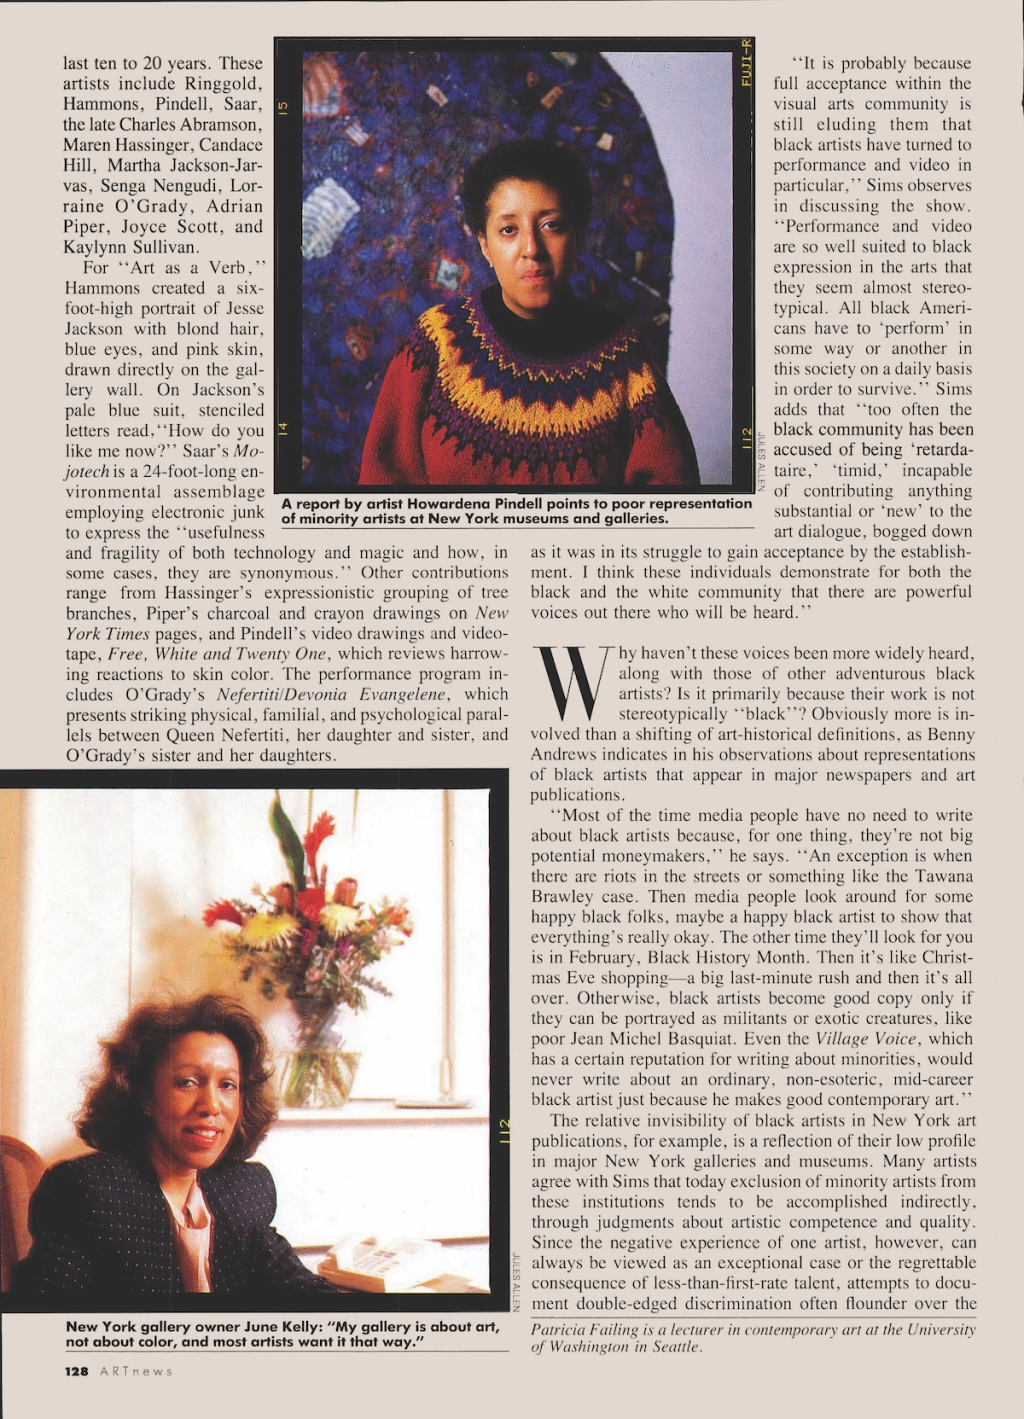 'There Has Been Change': Artist Howardena Pindell on a 1989 Article About U.S. Museums' Exclusion of Black Artists